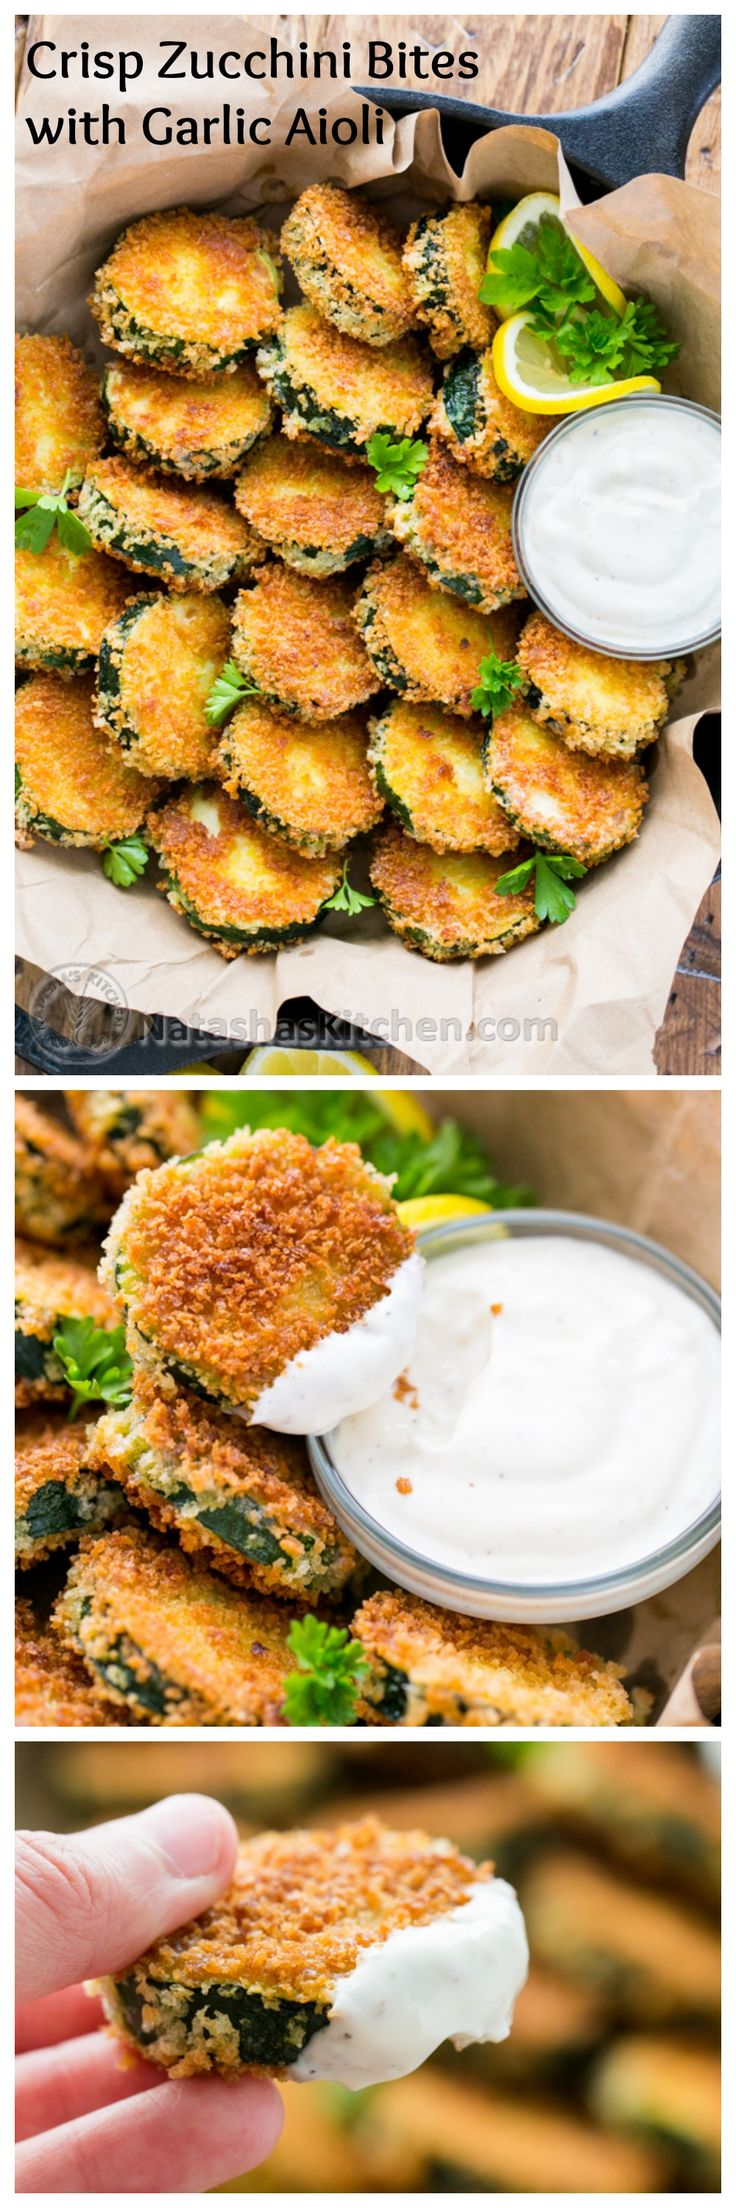 Crisp Zucchini Bites with Garlic Aioli Dip - You have to try these crisp zucchini bites paired with an easy garlic aioli dip. It's a winner!